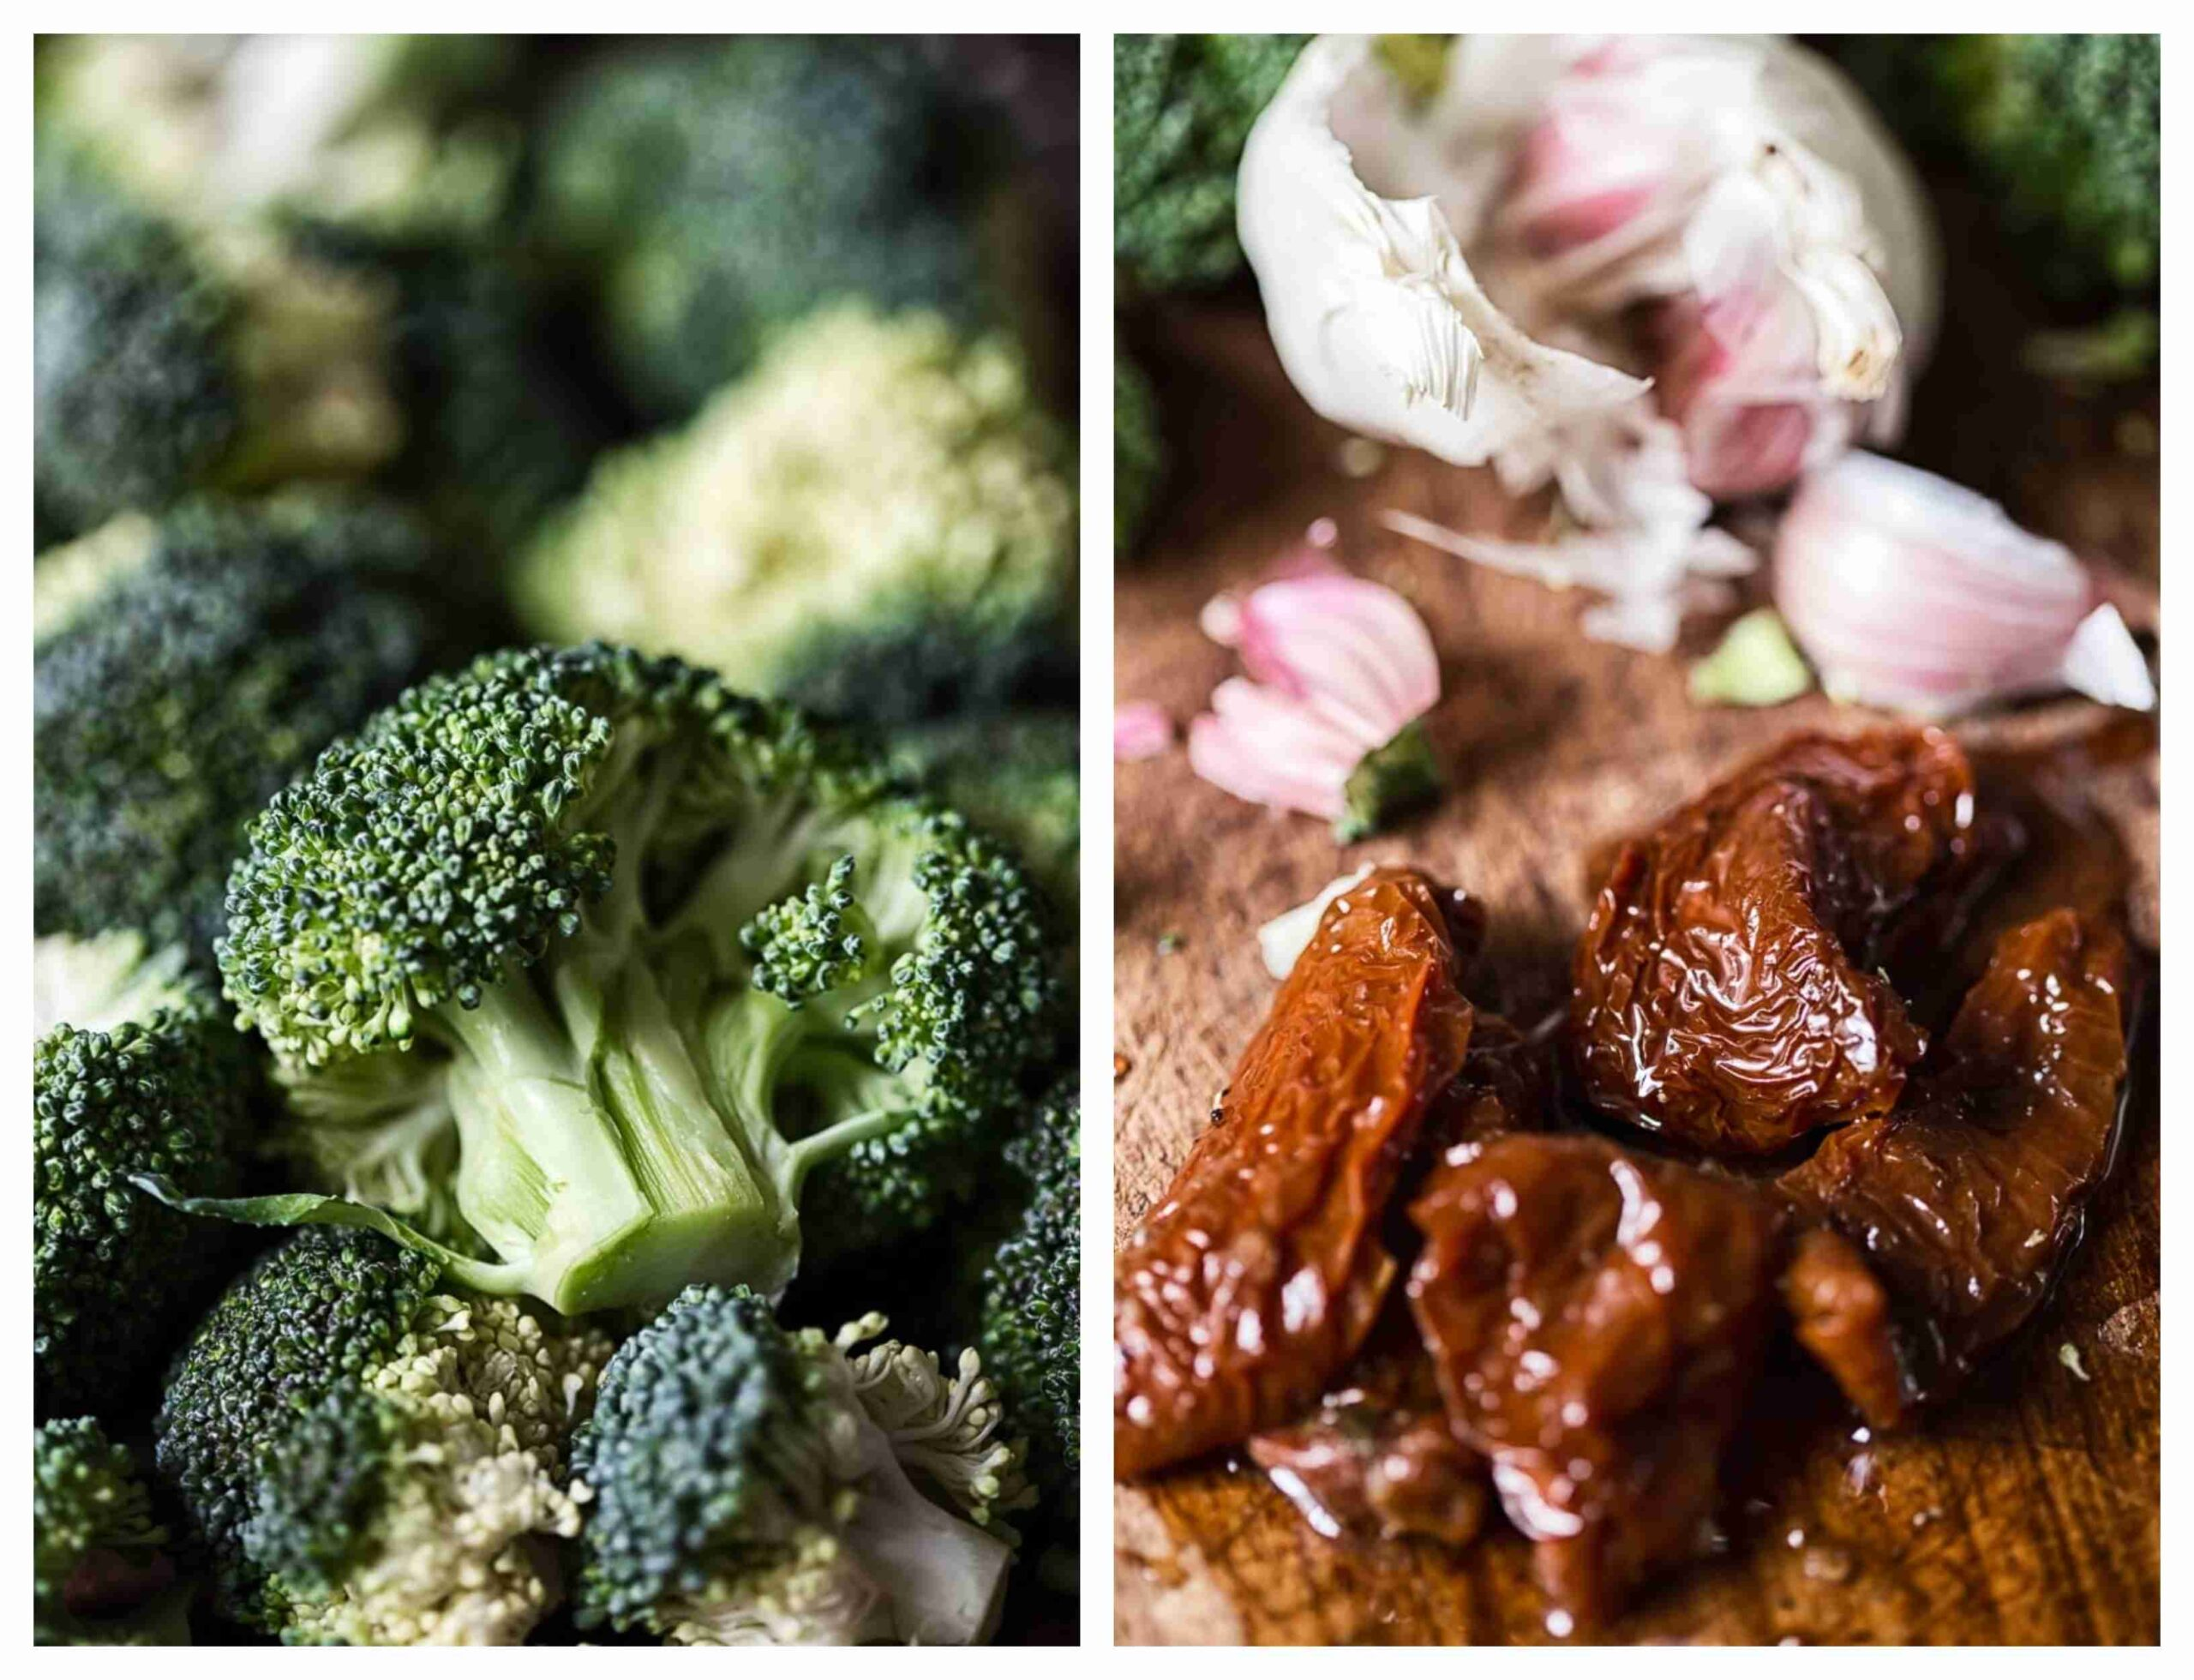 raw broccoli, sun-dried tomatoes and garlic cloves in the background close ups